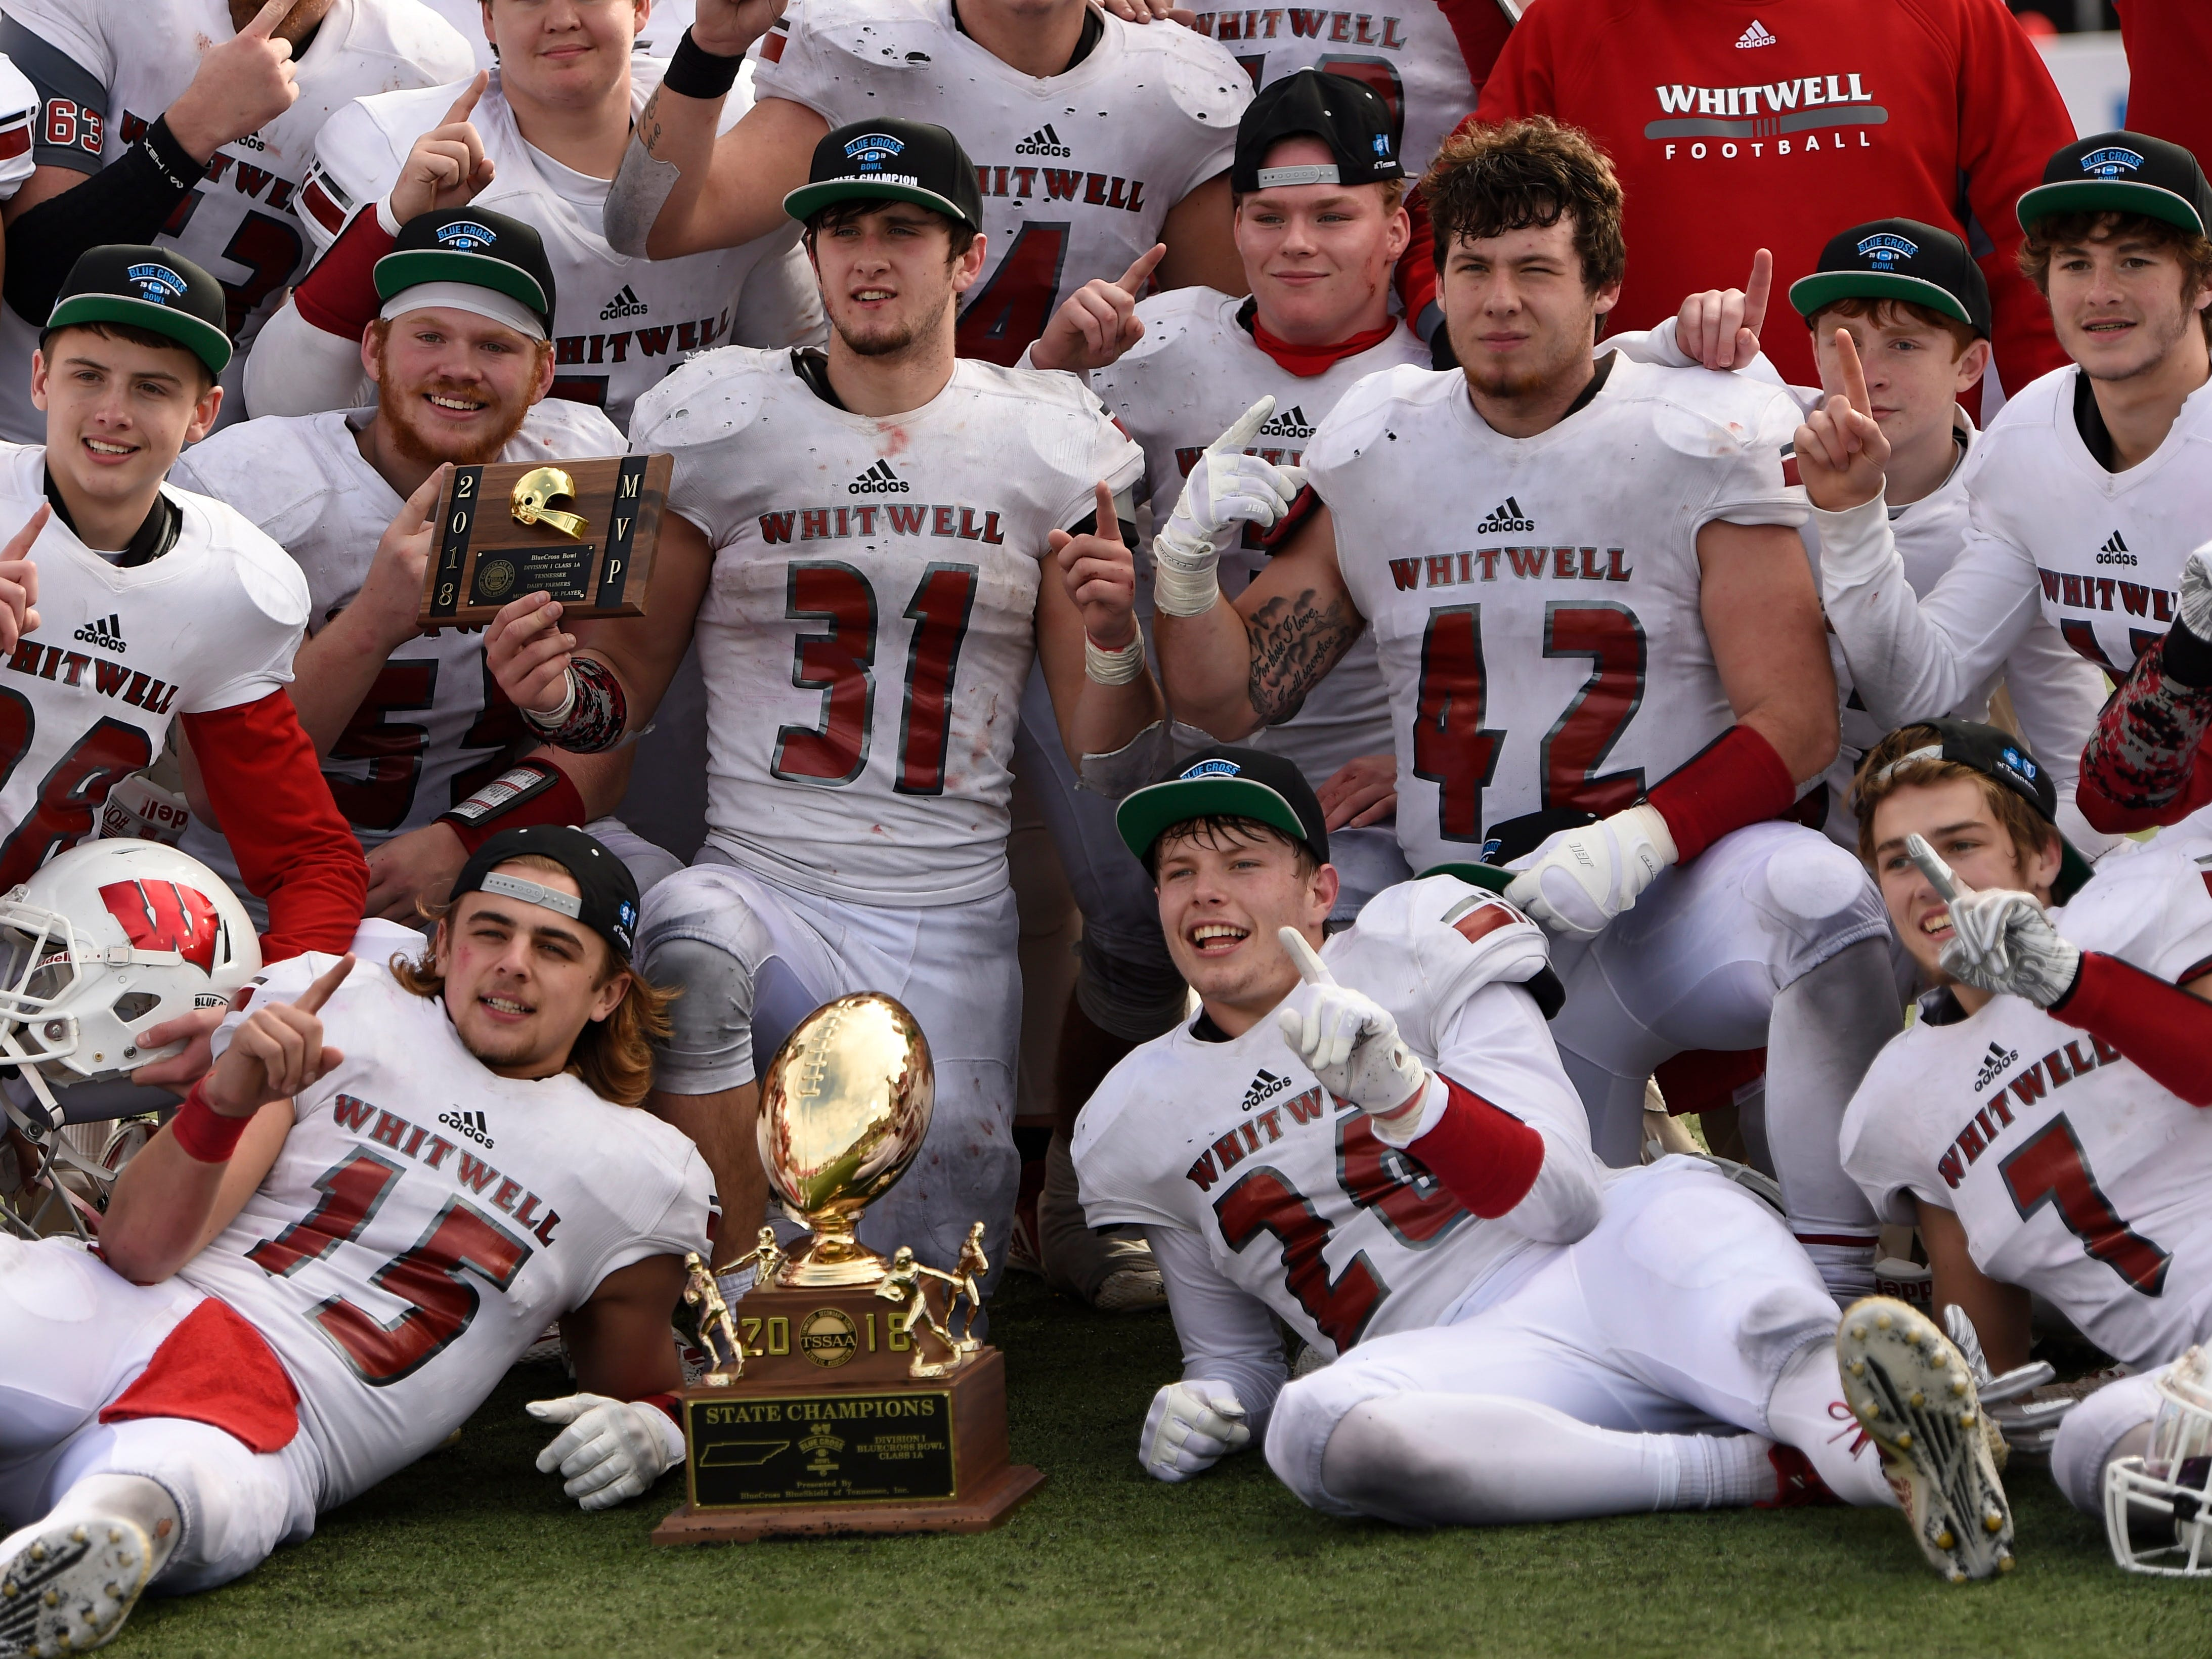 Whitwell players celebrate their Class I-A BlueCross Bowl state championship at Tennessee Tech's Tucker Stadium in Cookeville, Tenn., on Saturday, Dec. 1, 2018.